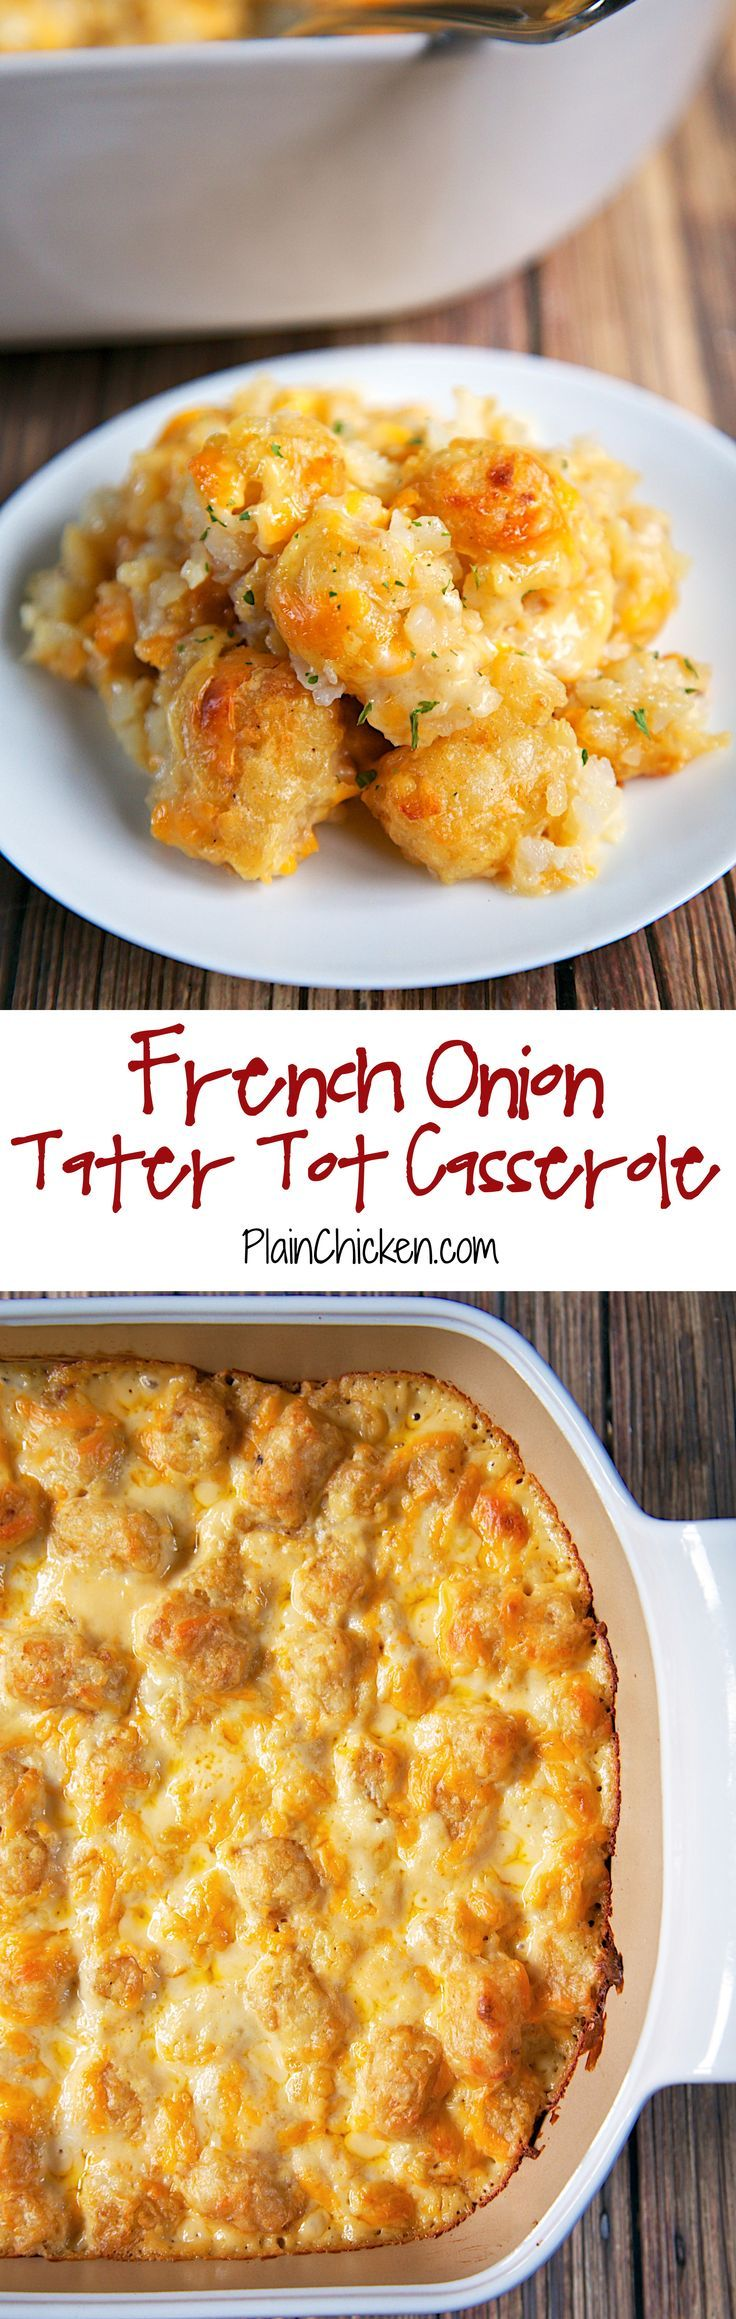 French Onion Tater Tot Casserole Recipe - tater tots, french onion dip, cream of chicken soup, cheese - LOVE this casserole! Can make ahead and freezer for later. You can even split it between two foil pans - one for now and one for the freezer. Super easy side dish with only 4 ingredients that tastes great!